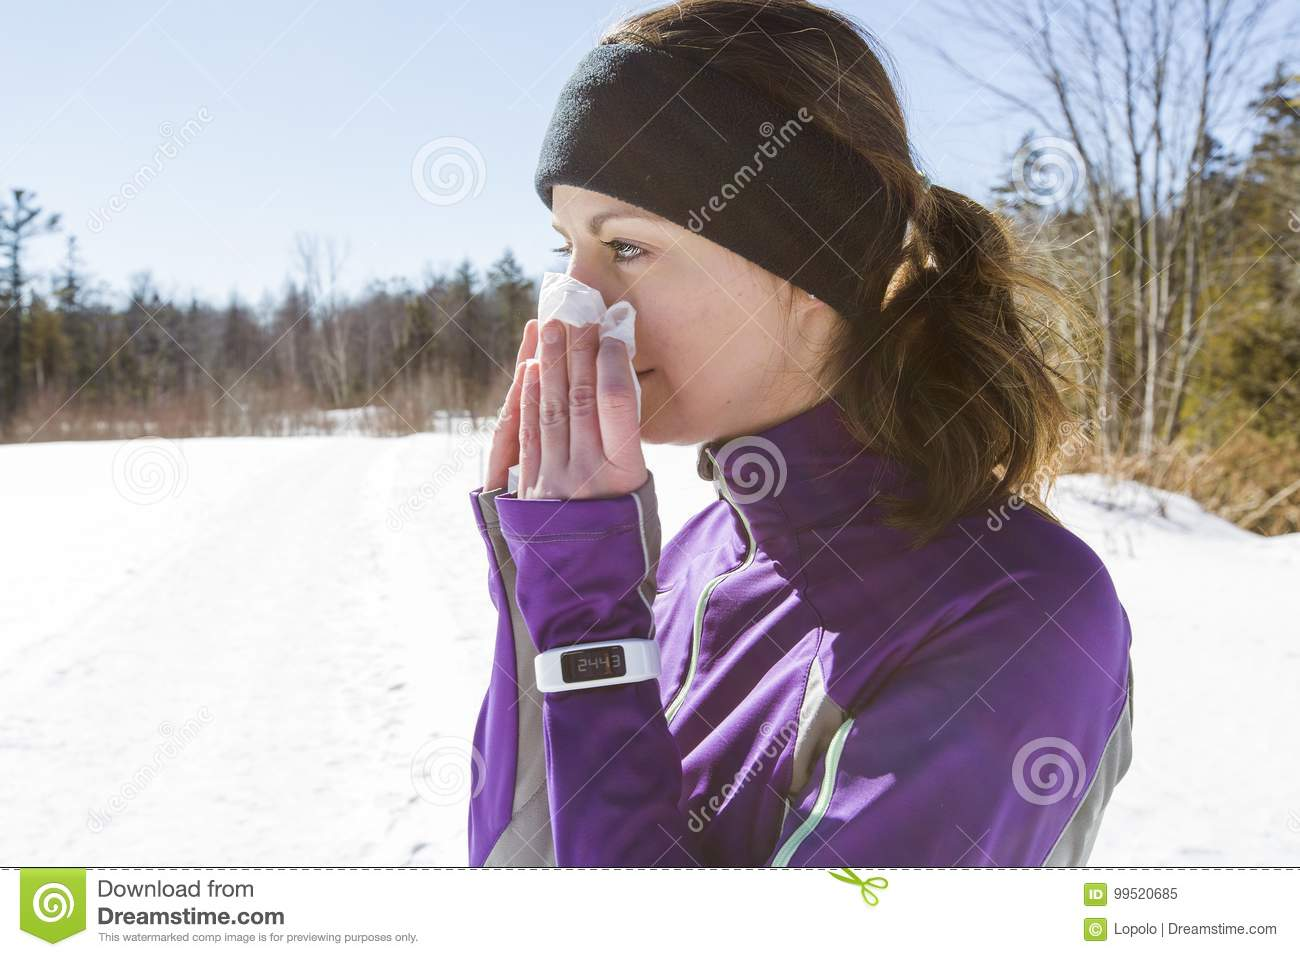 Runner Woman blowing her nose outside in the cold